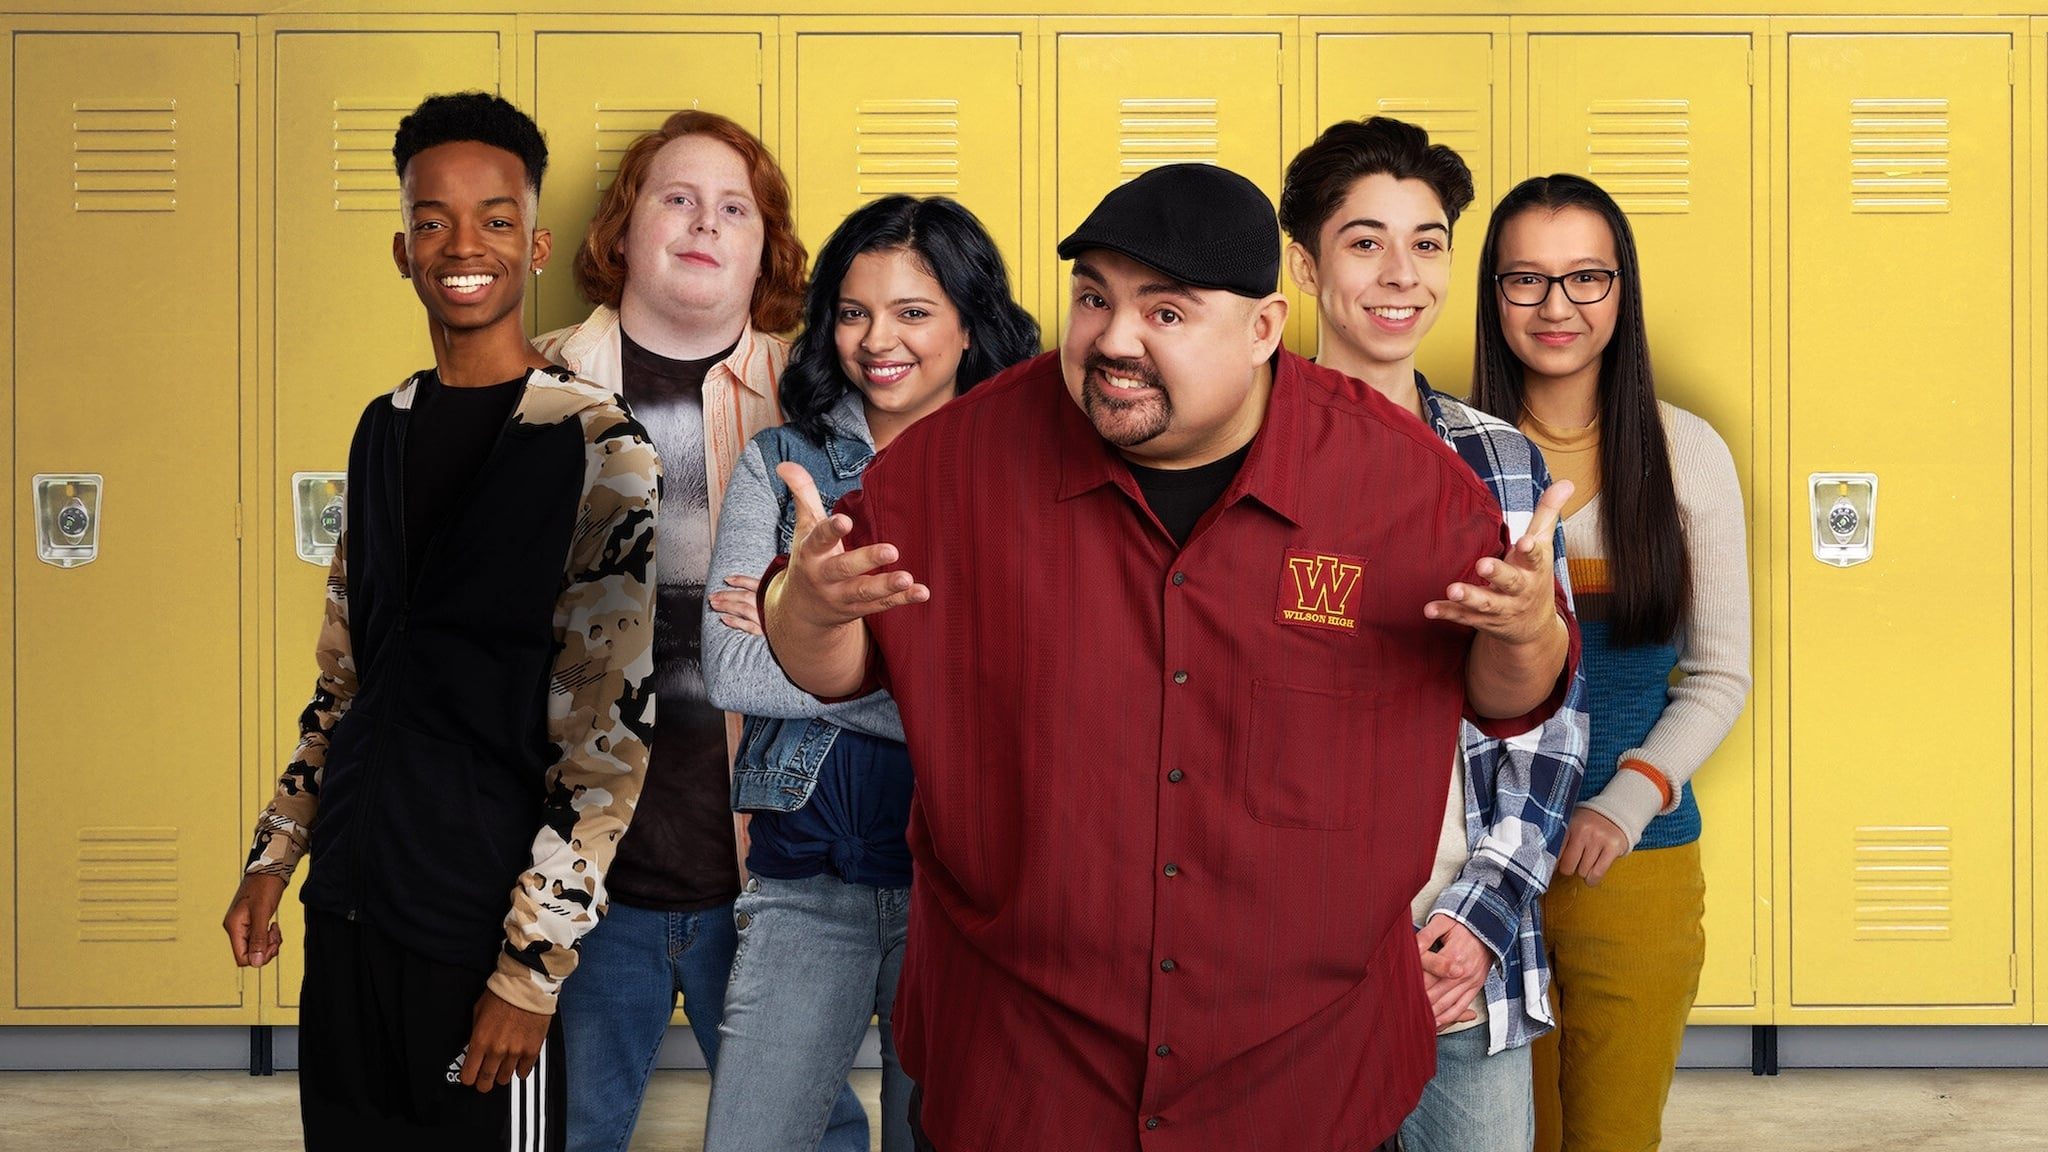 Third season Mr. Iglesias to release on Netflix in early December